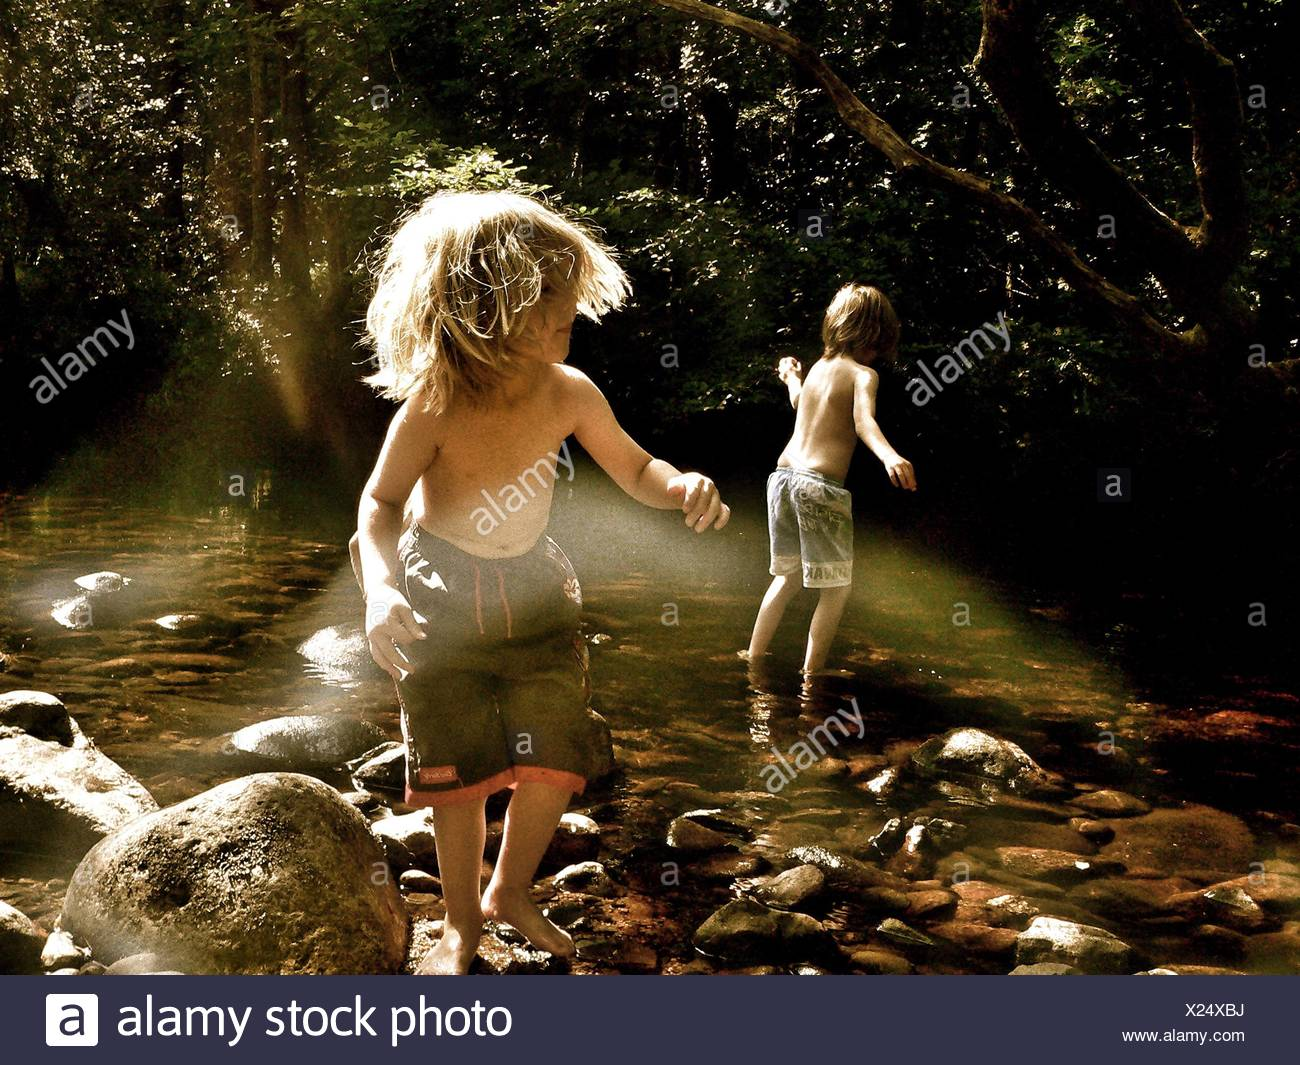 Boys Playing In Stream - Stock Image